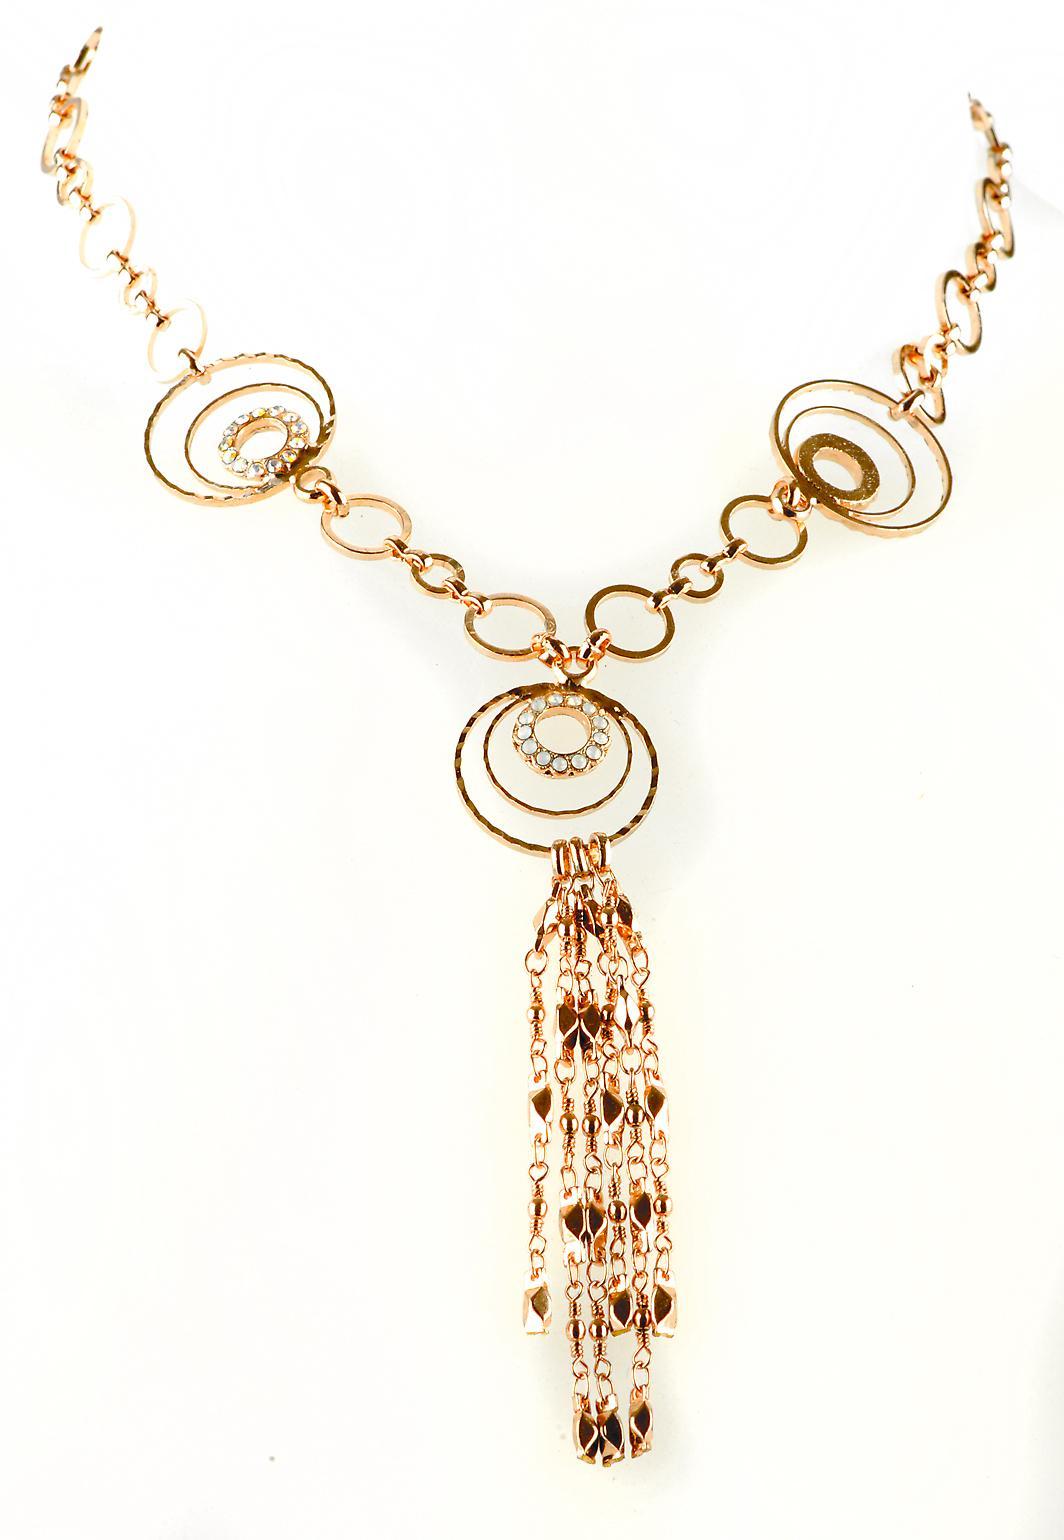 Waooh - jewelry - WJ0301 - necklace with Rhinestone Swarovski Style Diamond - chain color gold